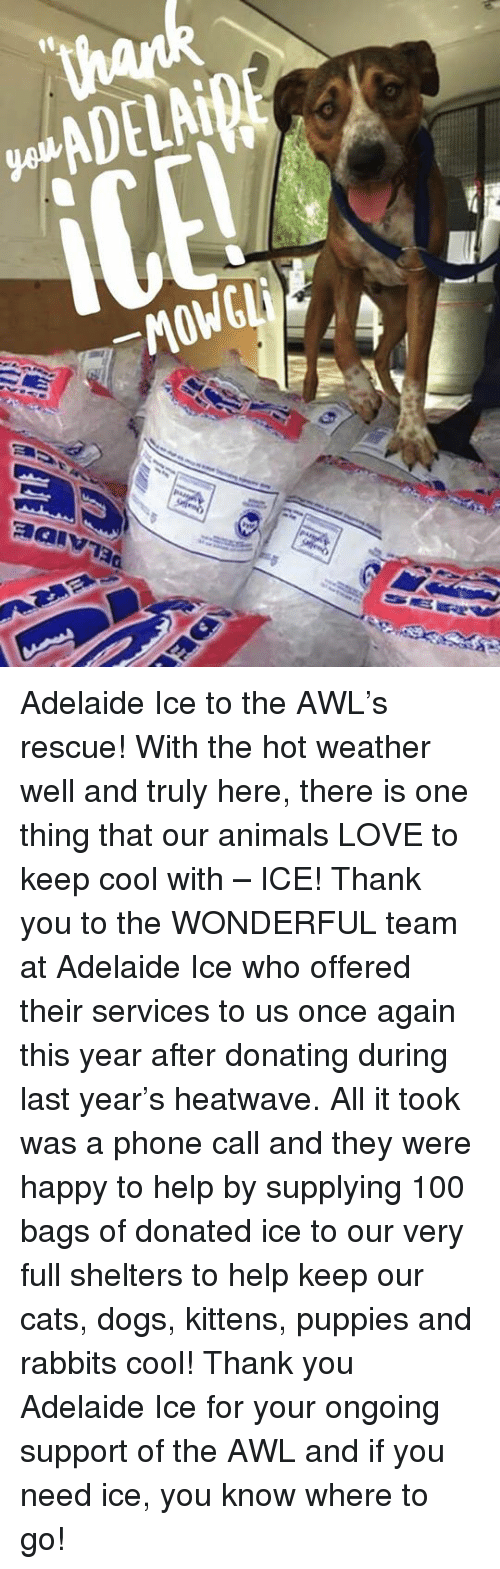 keeping cool: ADELAiBE  _MOWGLi  제alv73a Adelaide Ice to the AWL's rescue!  With the hot weather well and truly here, there is one thing that our animals LOVE to keep cool with – ICE!  Thank you to the WONDERFUL team at Adelaide Ice who offered their services to us once again this year after donating during last year's heatwave.  All it took was a phone call and they were happy to help by supplying 100 bags of donated ice to our very full shelters to help keep our cats, dogs, kittens, puppies and rabbits cool!  Thank you Adelaide Ice for your ongoing support of the AWL and if you need ice, you know where to go!